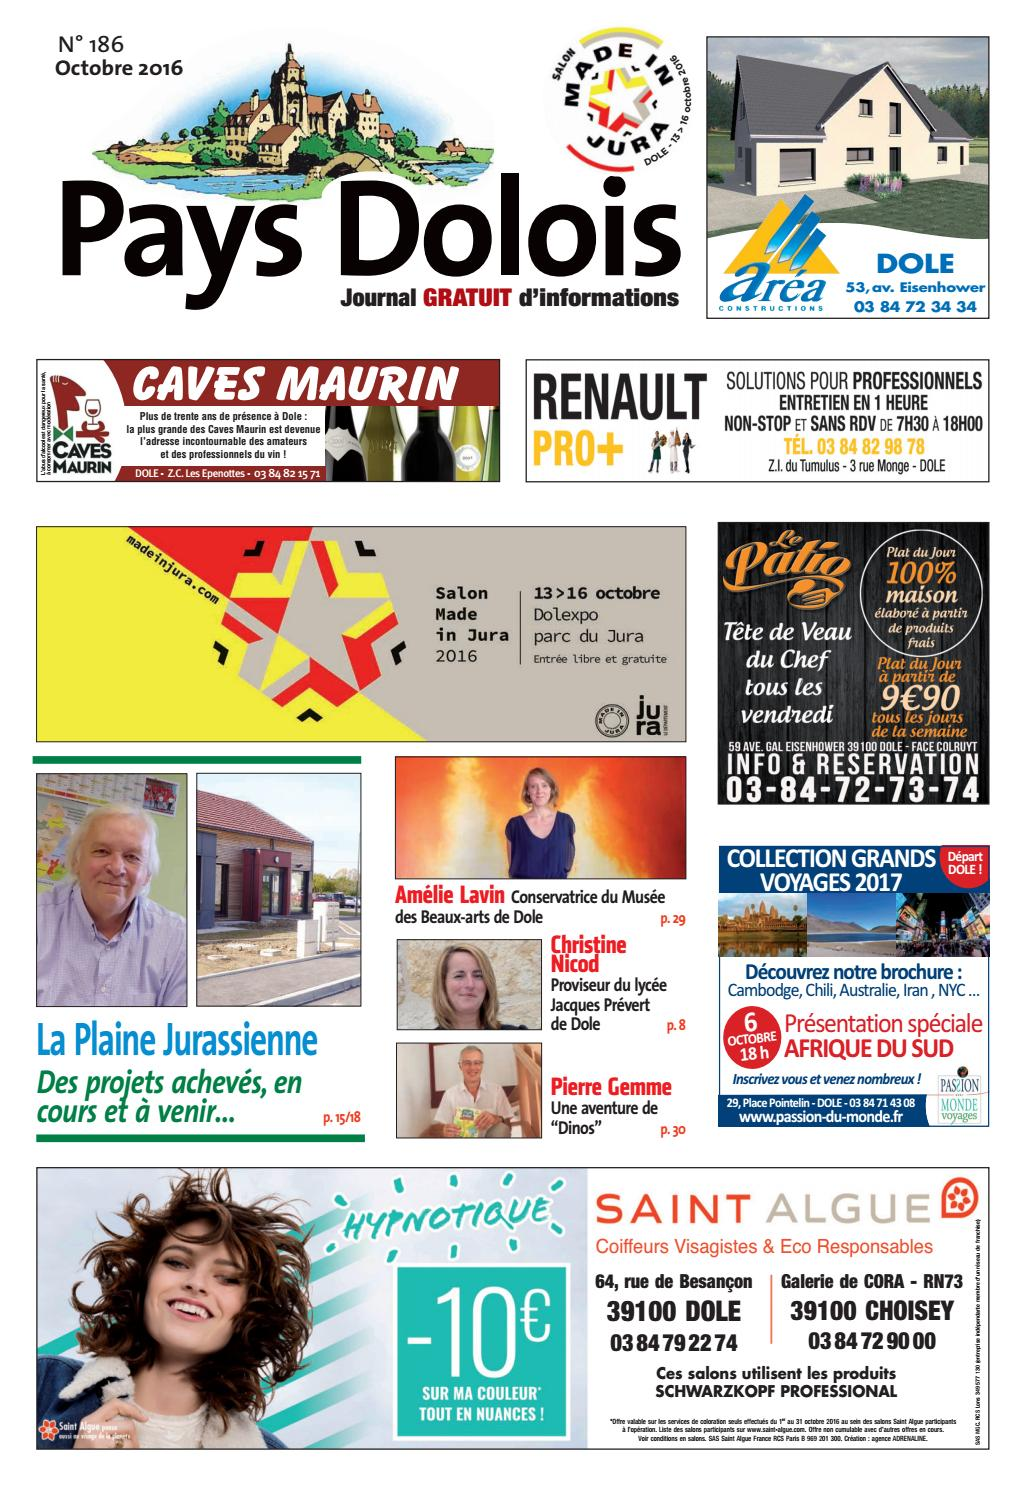 Pays Dolois 186 by PAOH - issuu 4e1b0755eef3